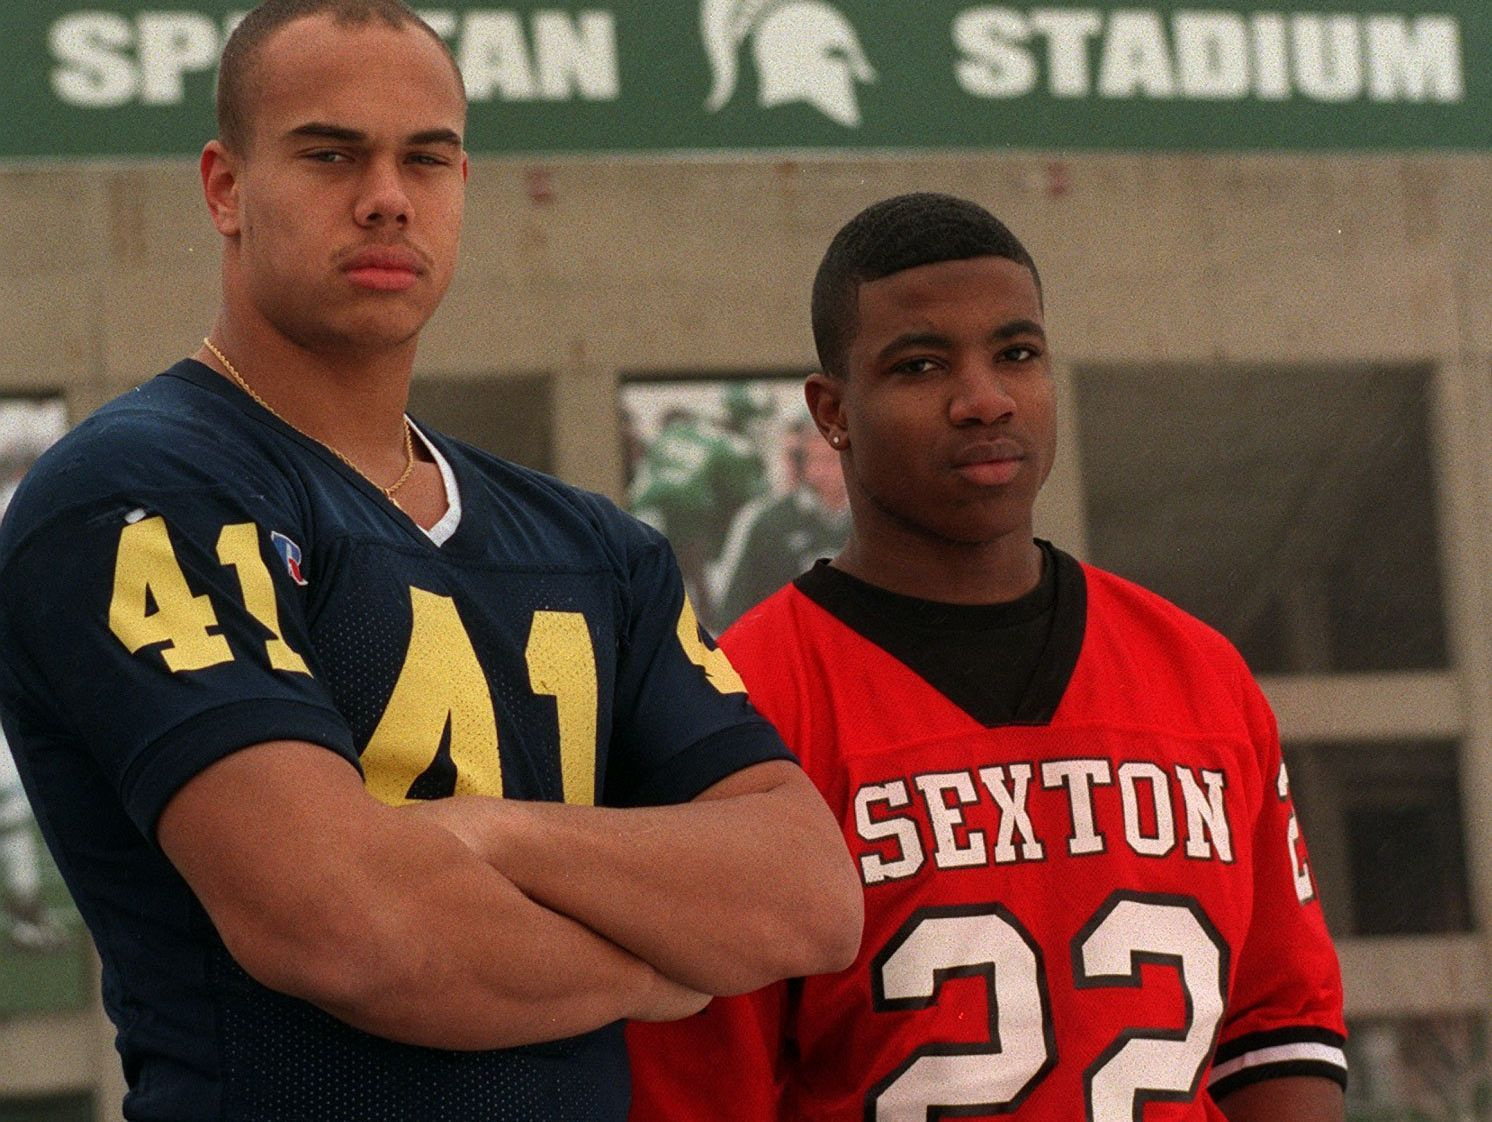 Eastern High's Josh Thornhill (left) and Sexton's Shawn Foster were two of the state's best recruits in their class.